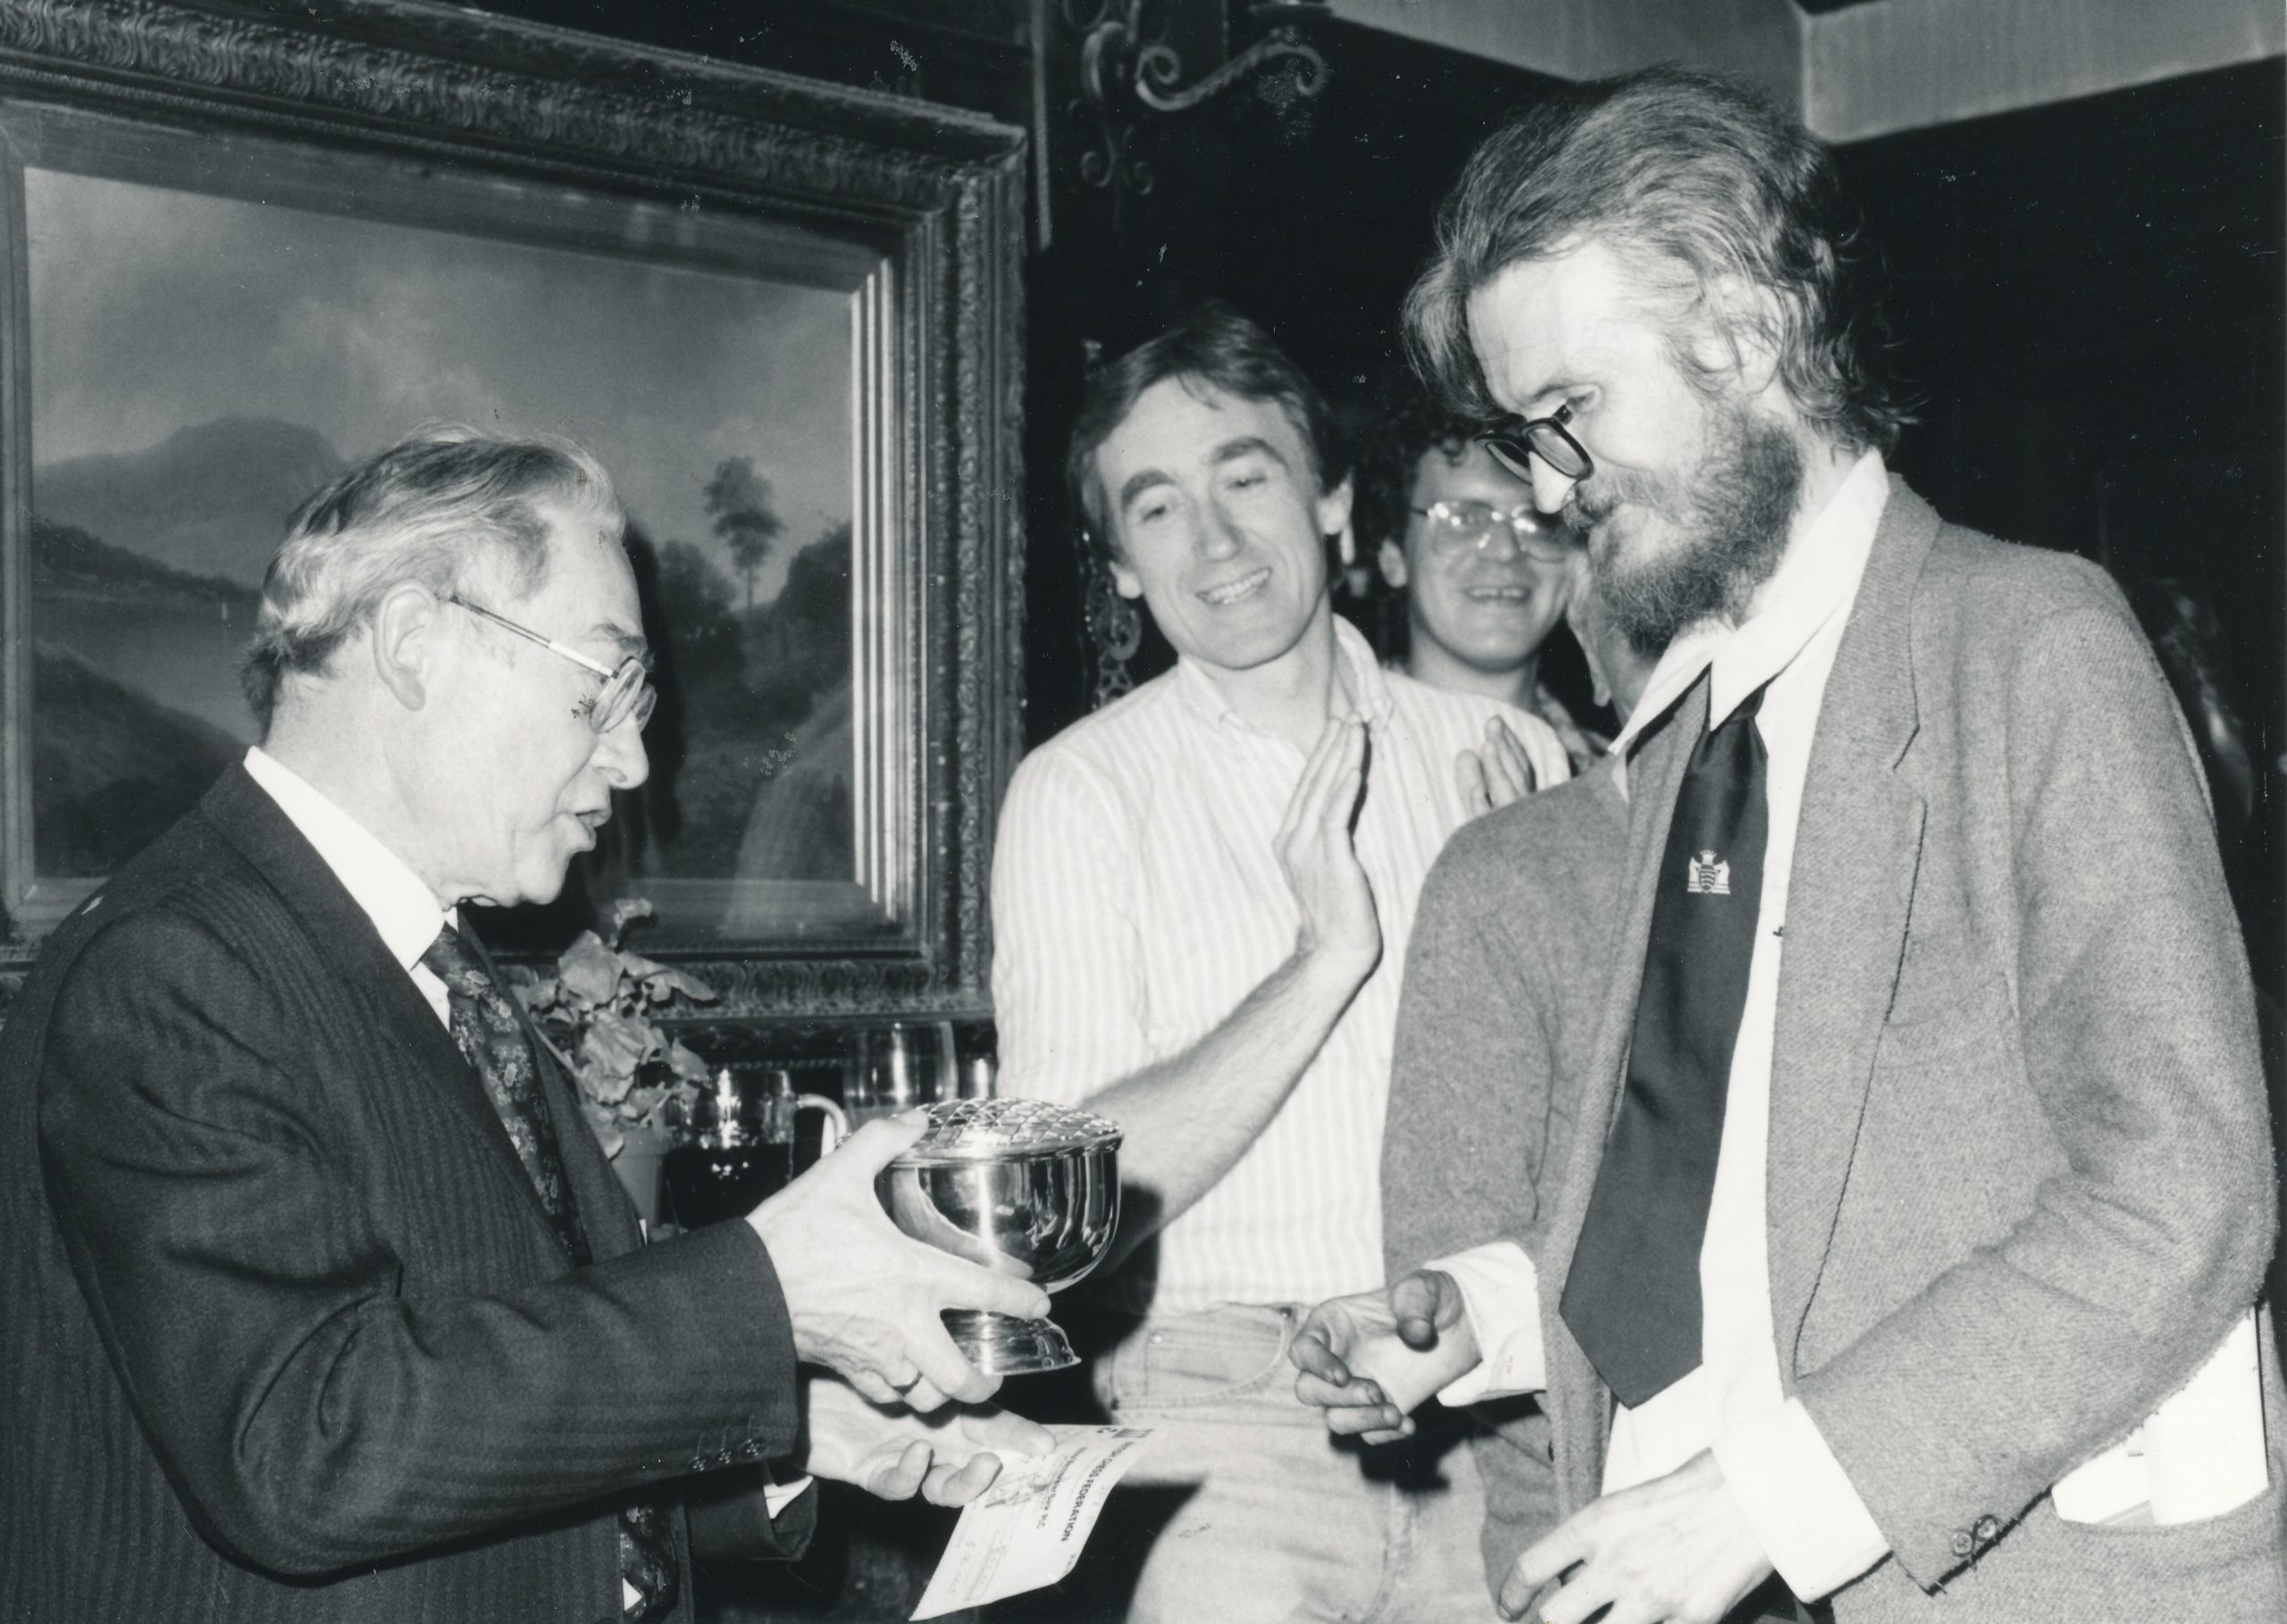 Andrew Whiteley receives the Rosebowl trophy from John Poole